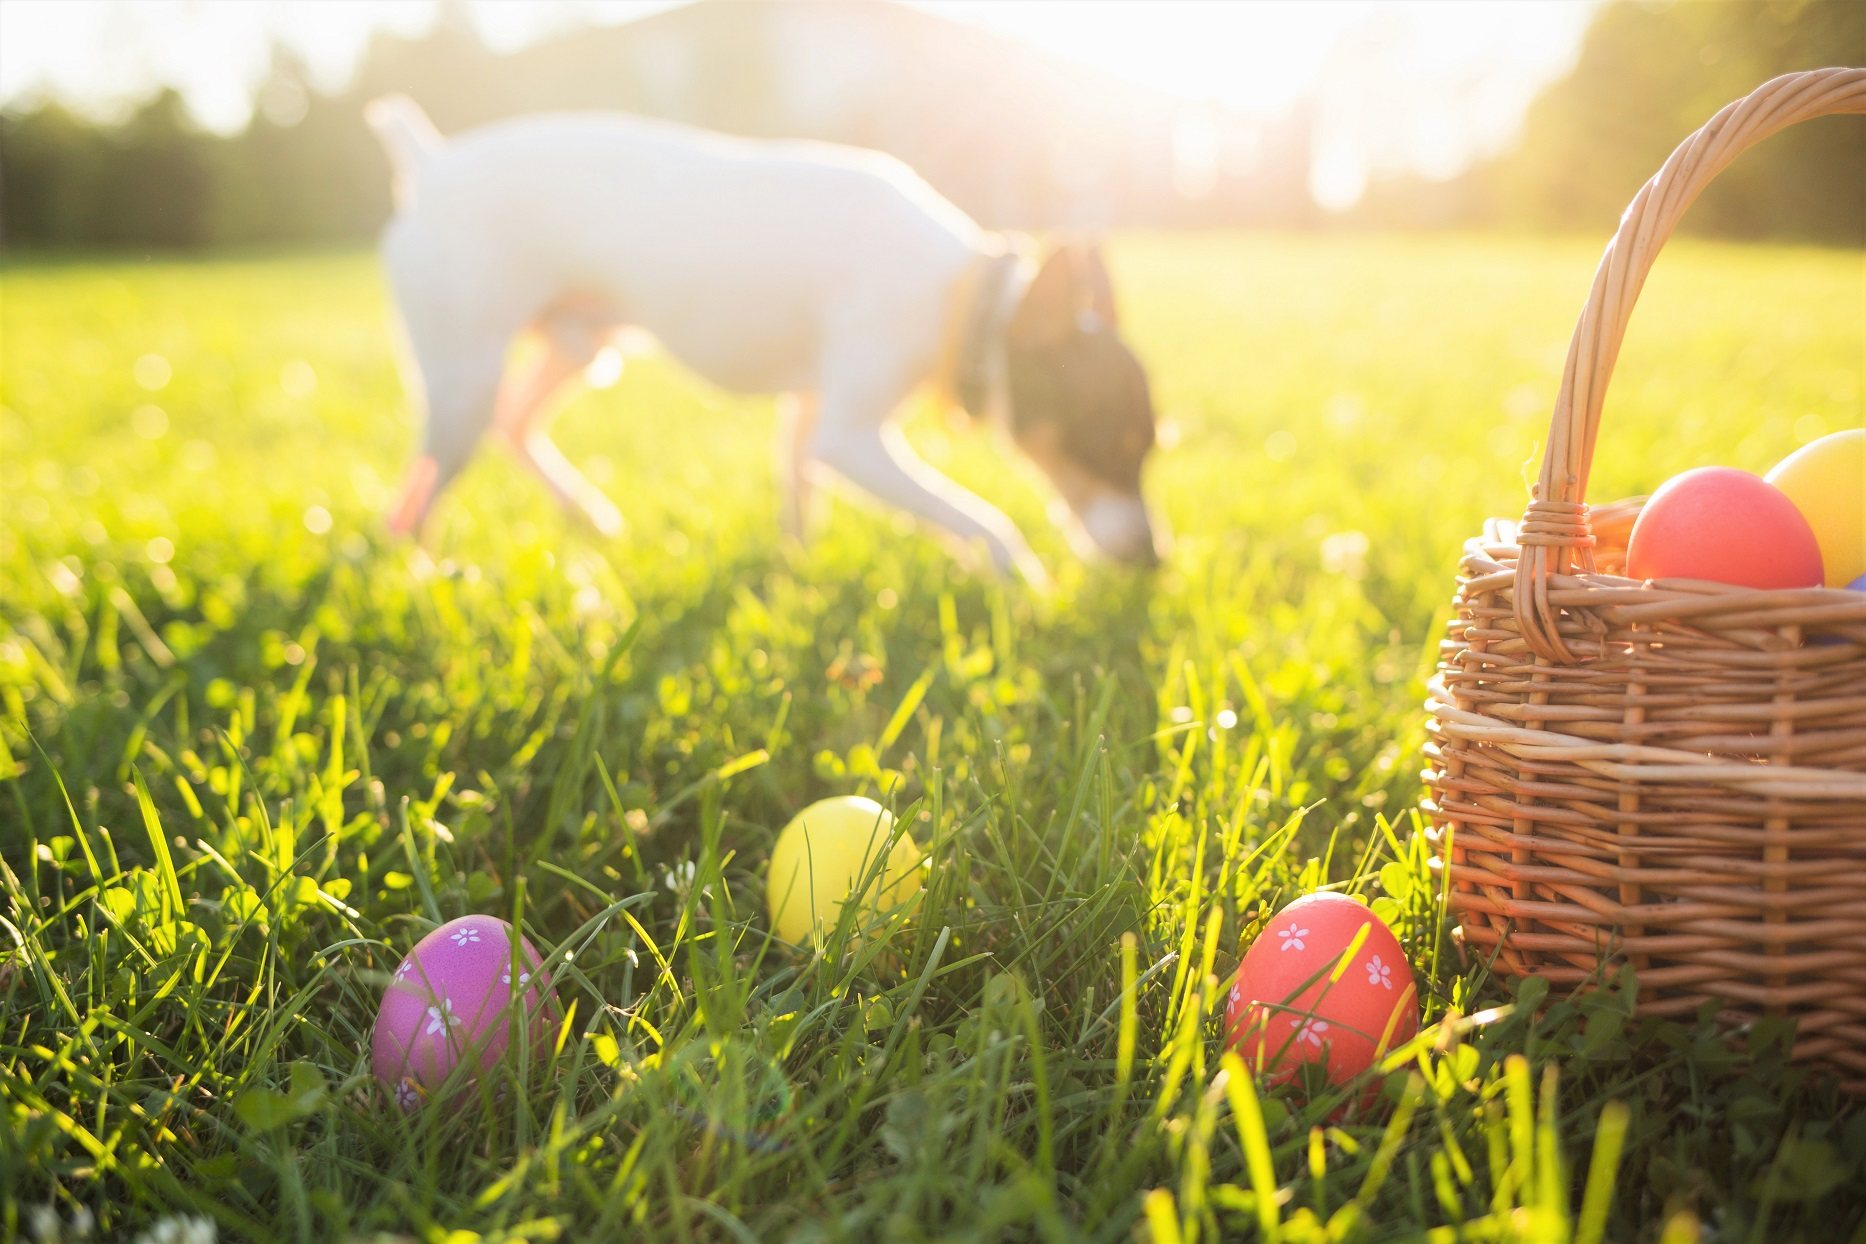 Easter Eggs on Grass and Basket with Dog Sniffing Grass